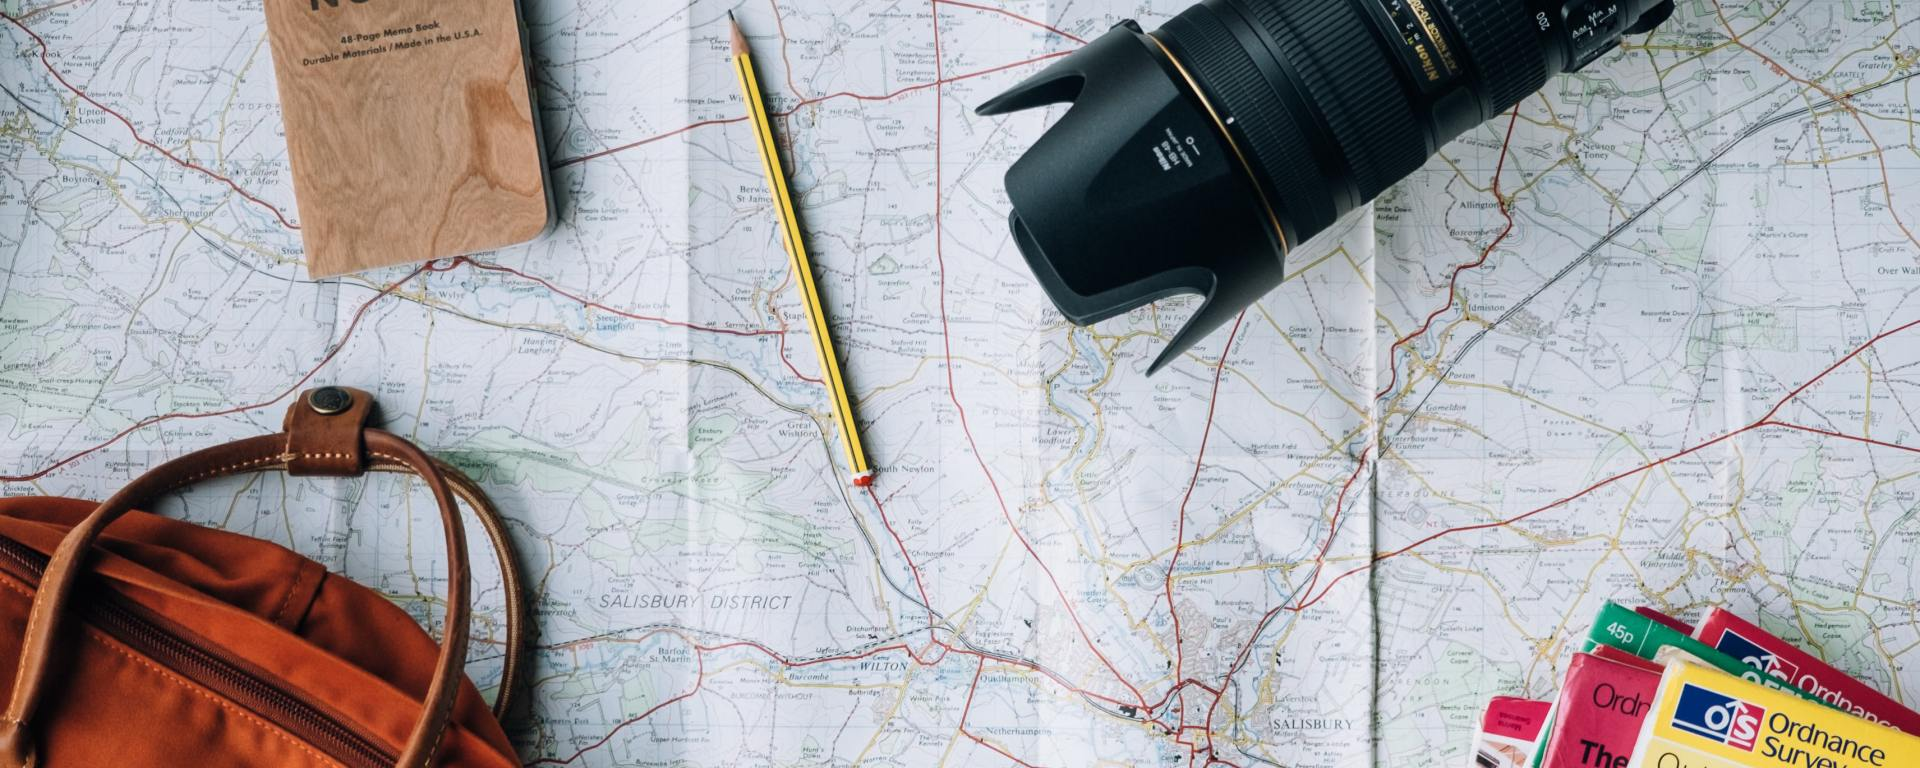 An image of a large map with a backpack, maps, notebook, and camera on top of it.